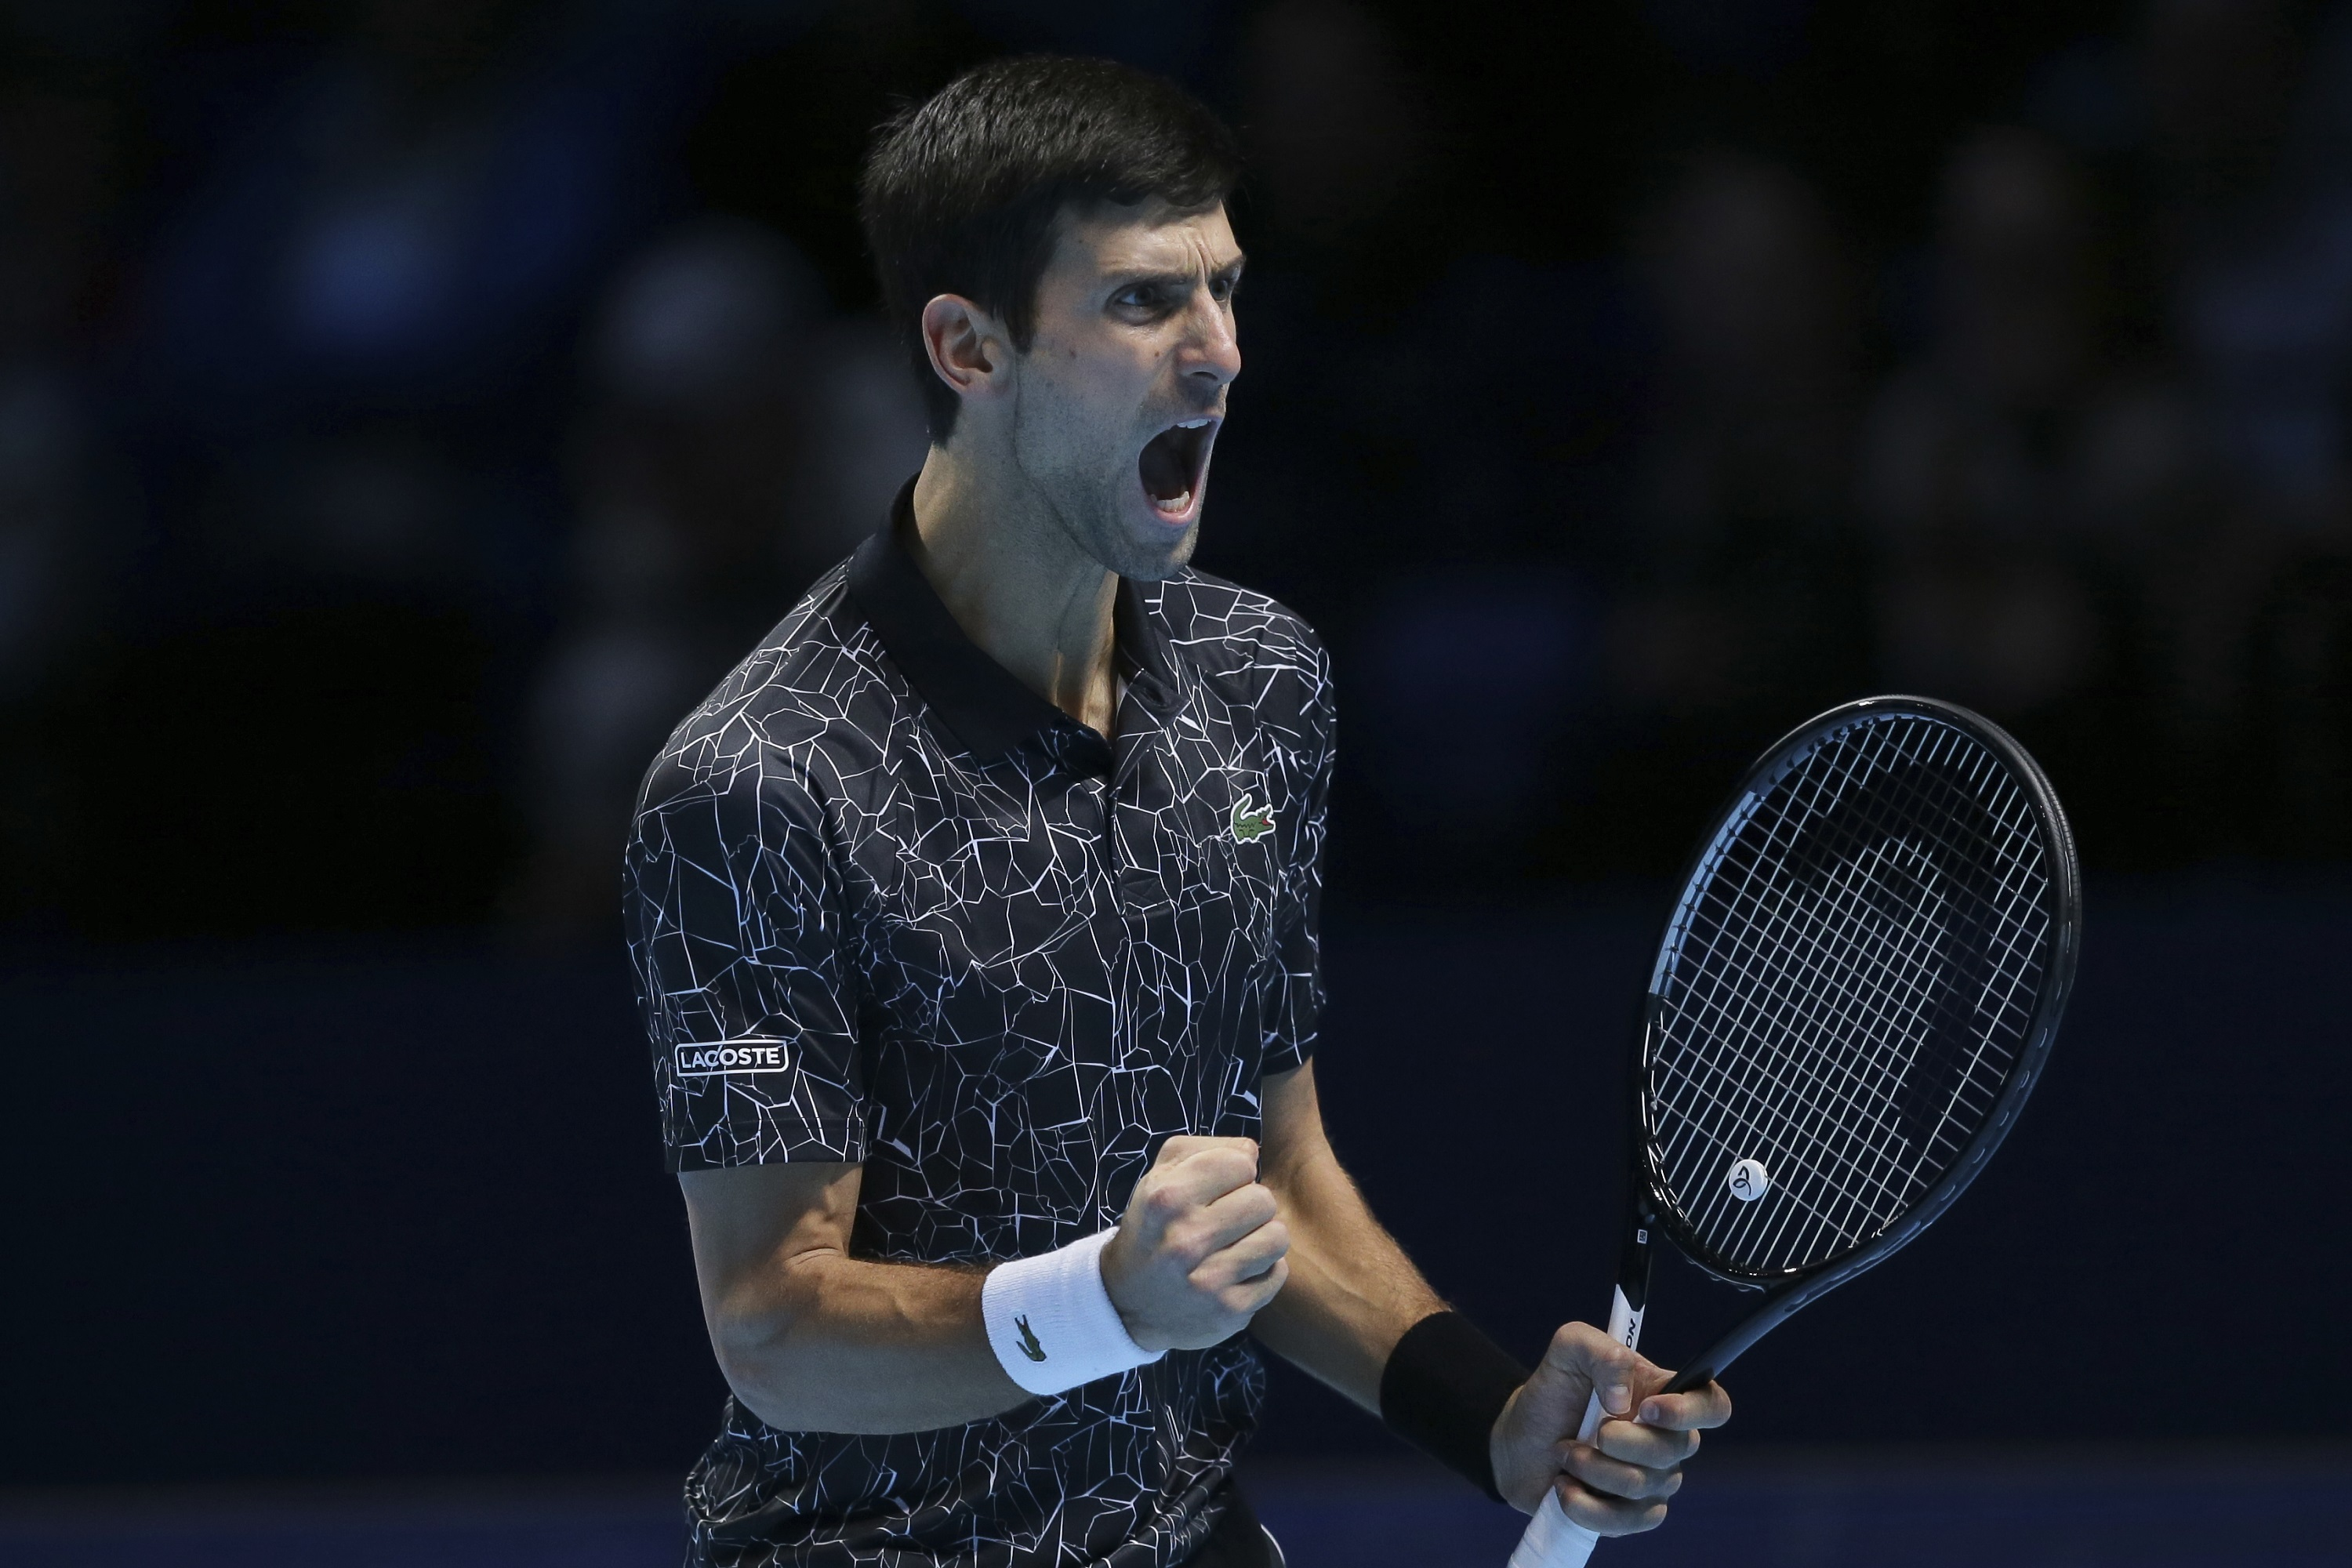 Tennis - ATP - Masters : Djokovic attaque fort face à Isner